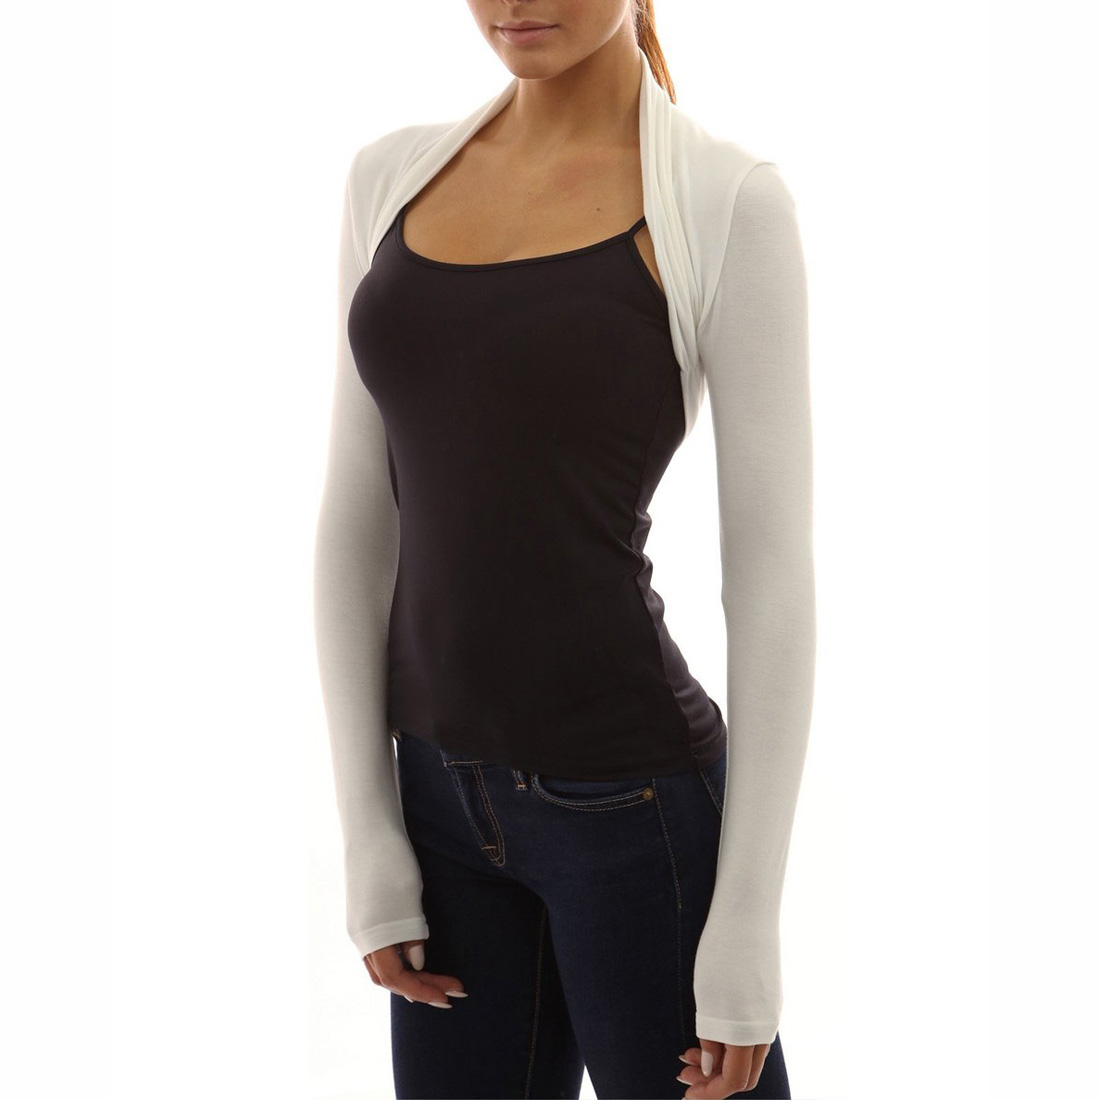 Shop Chico's for a wide selection of women's tops including blouses, tees, tunics, ponchos, tanks & sweaters.